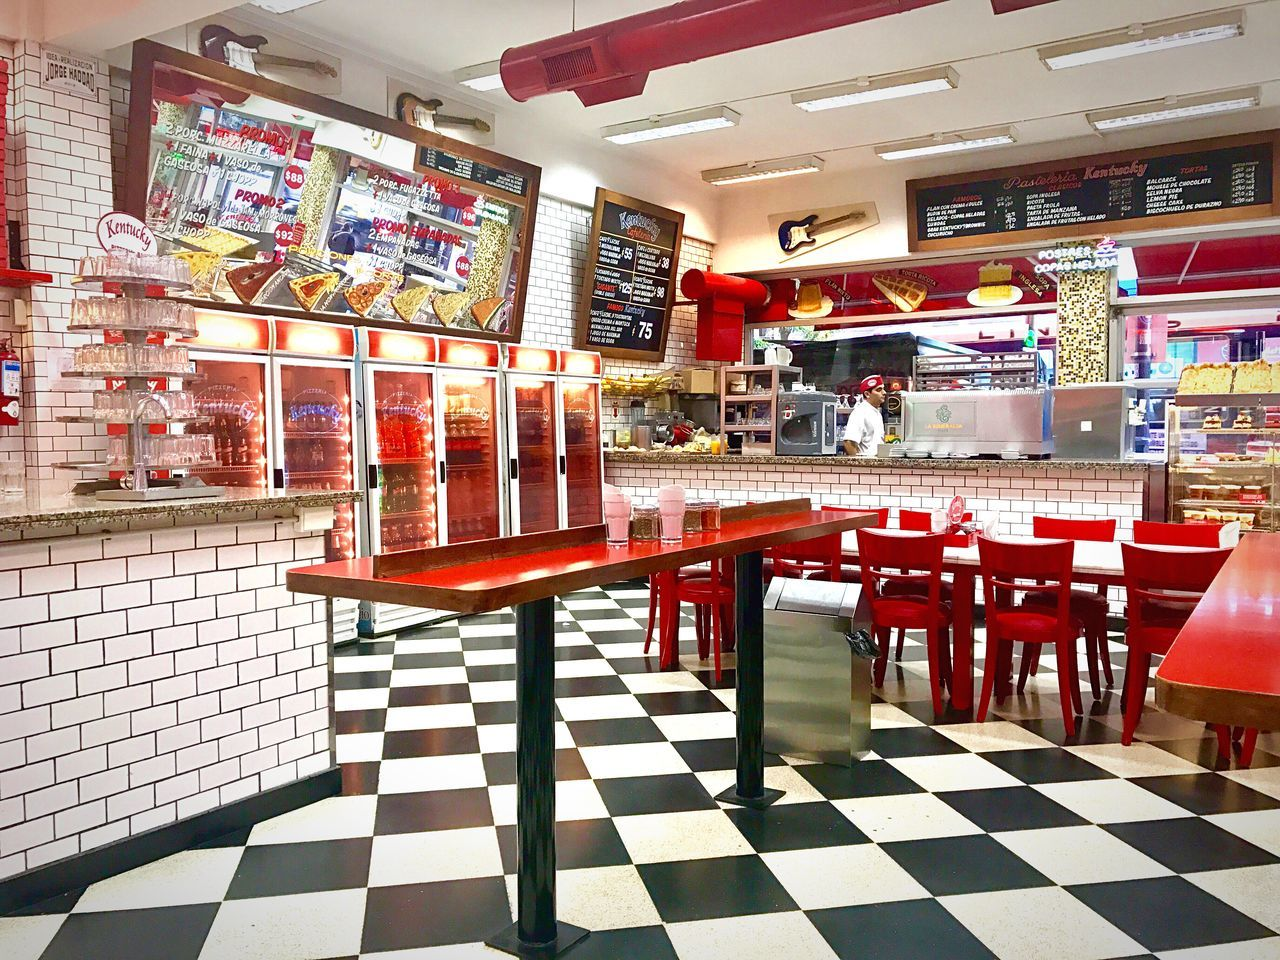 Red Store Tiled Floor Indoors  No People Architecture Day Pizzeria Kentuky Buenos Aires Argentina Pizza Argentina Buenos Aires, Argentina  Pizzeria Old Style Decoration Sixties Style Sixties